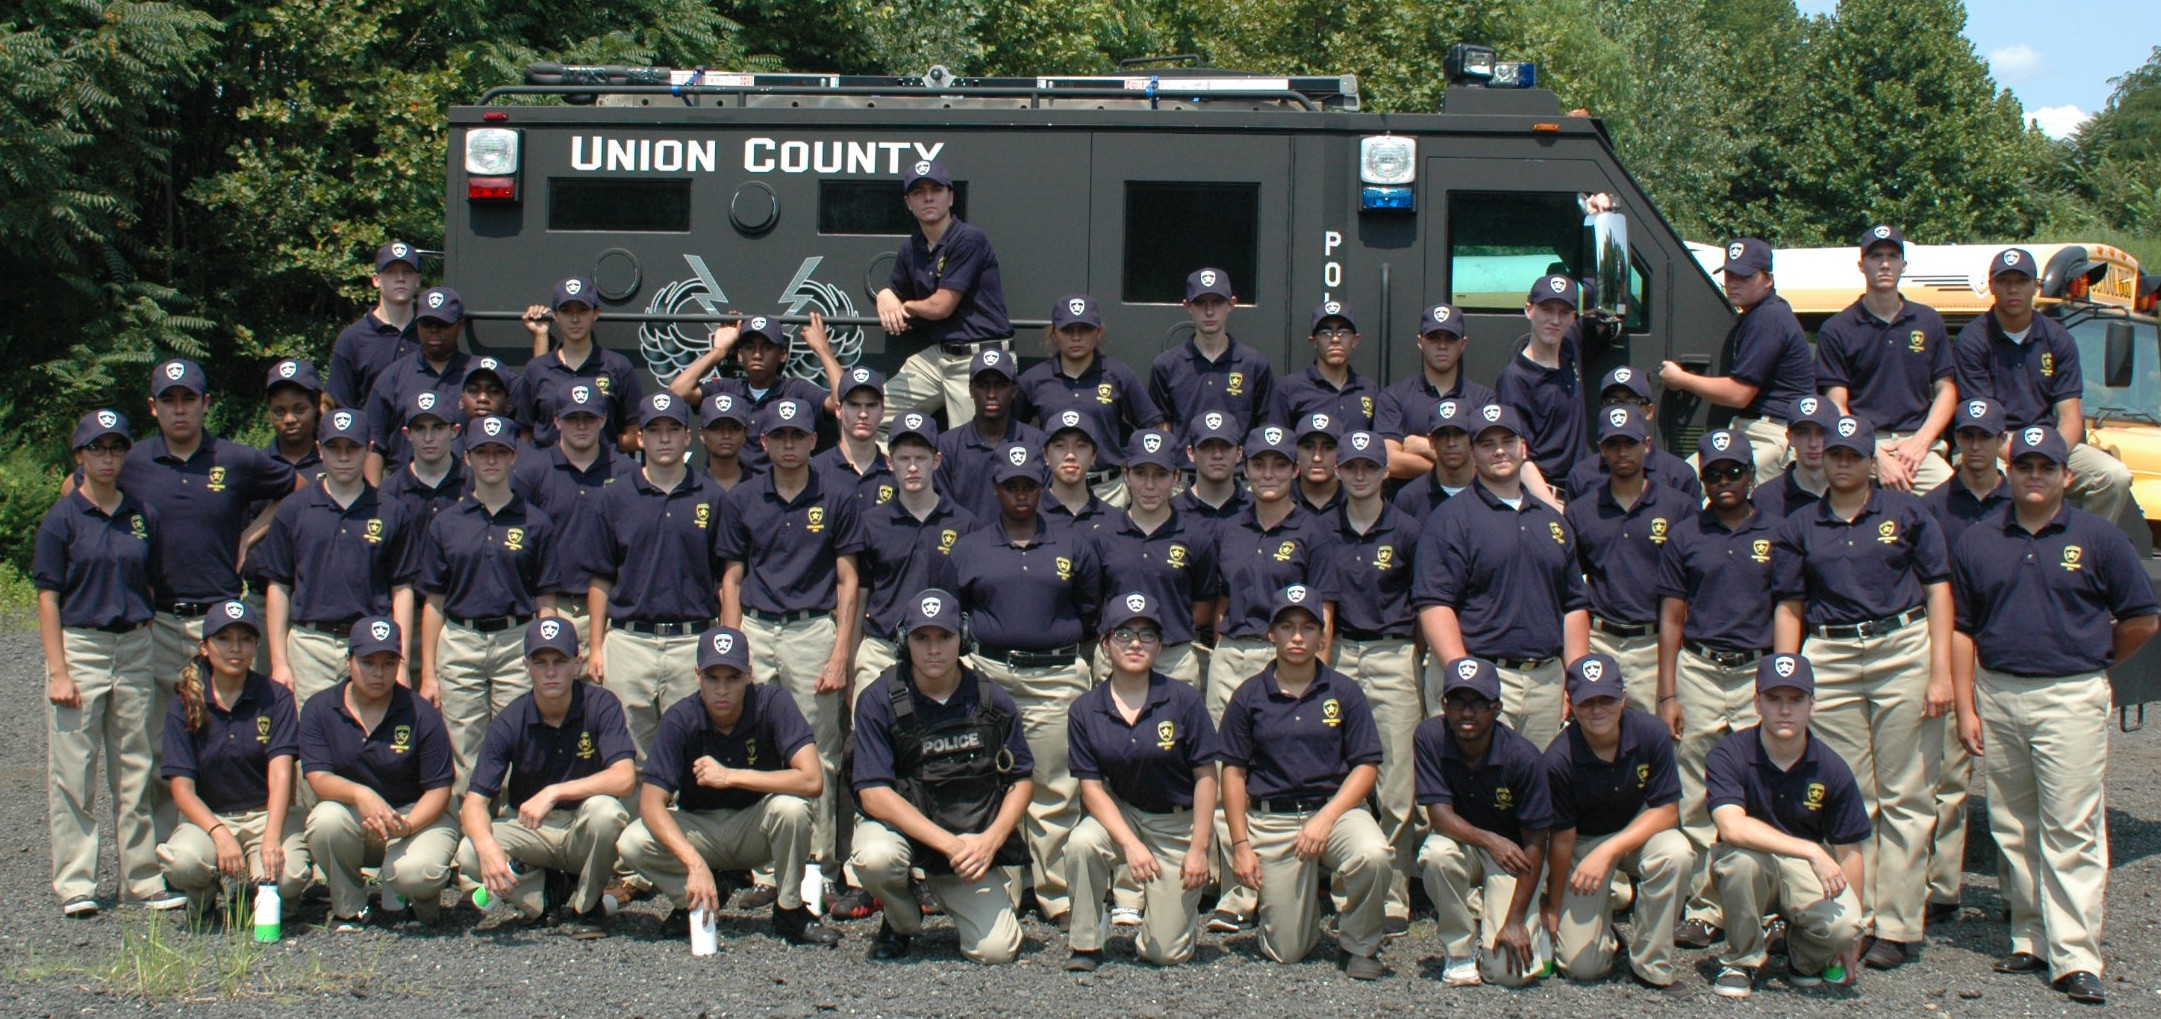 12th Annual Youth Academy – Union County Sheriff's Office